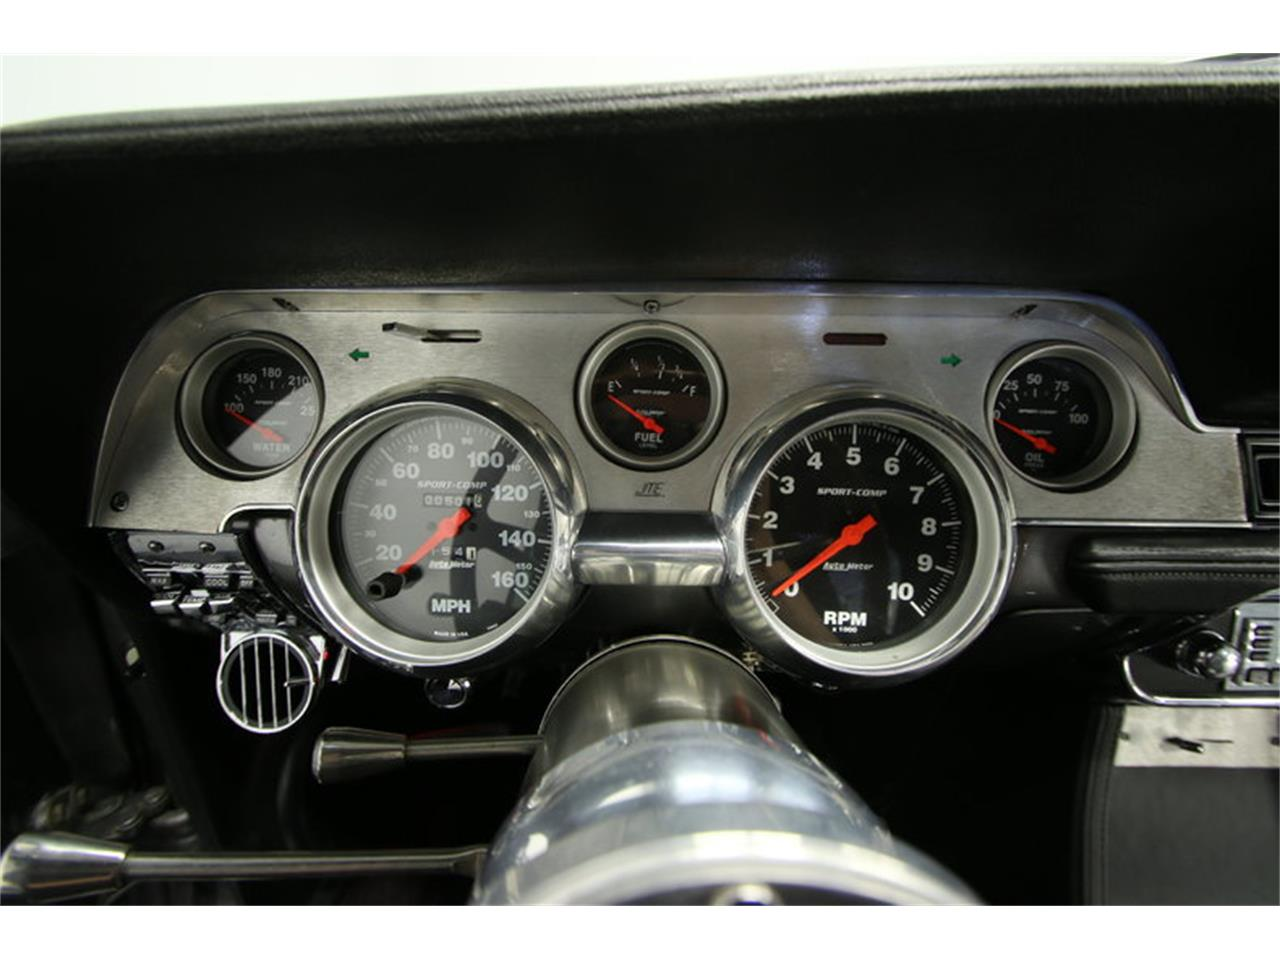 Large Picture of Classic '67 Mustang located in Florida - $84,995.00 Offered by Streetside Classics - Tampa - HDGJ